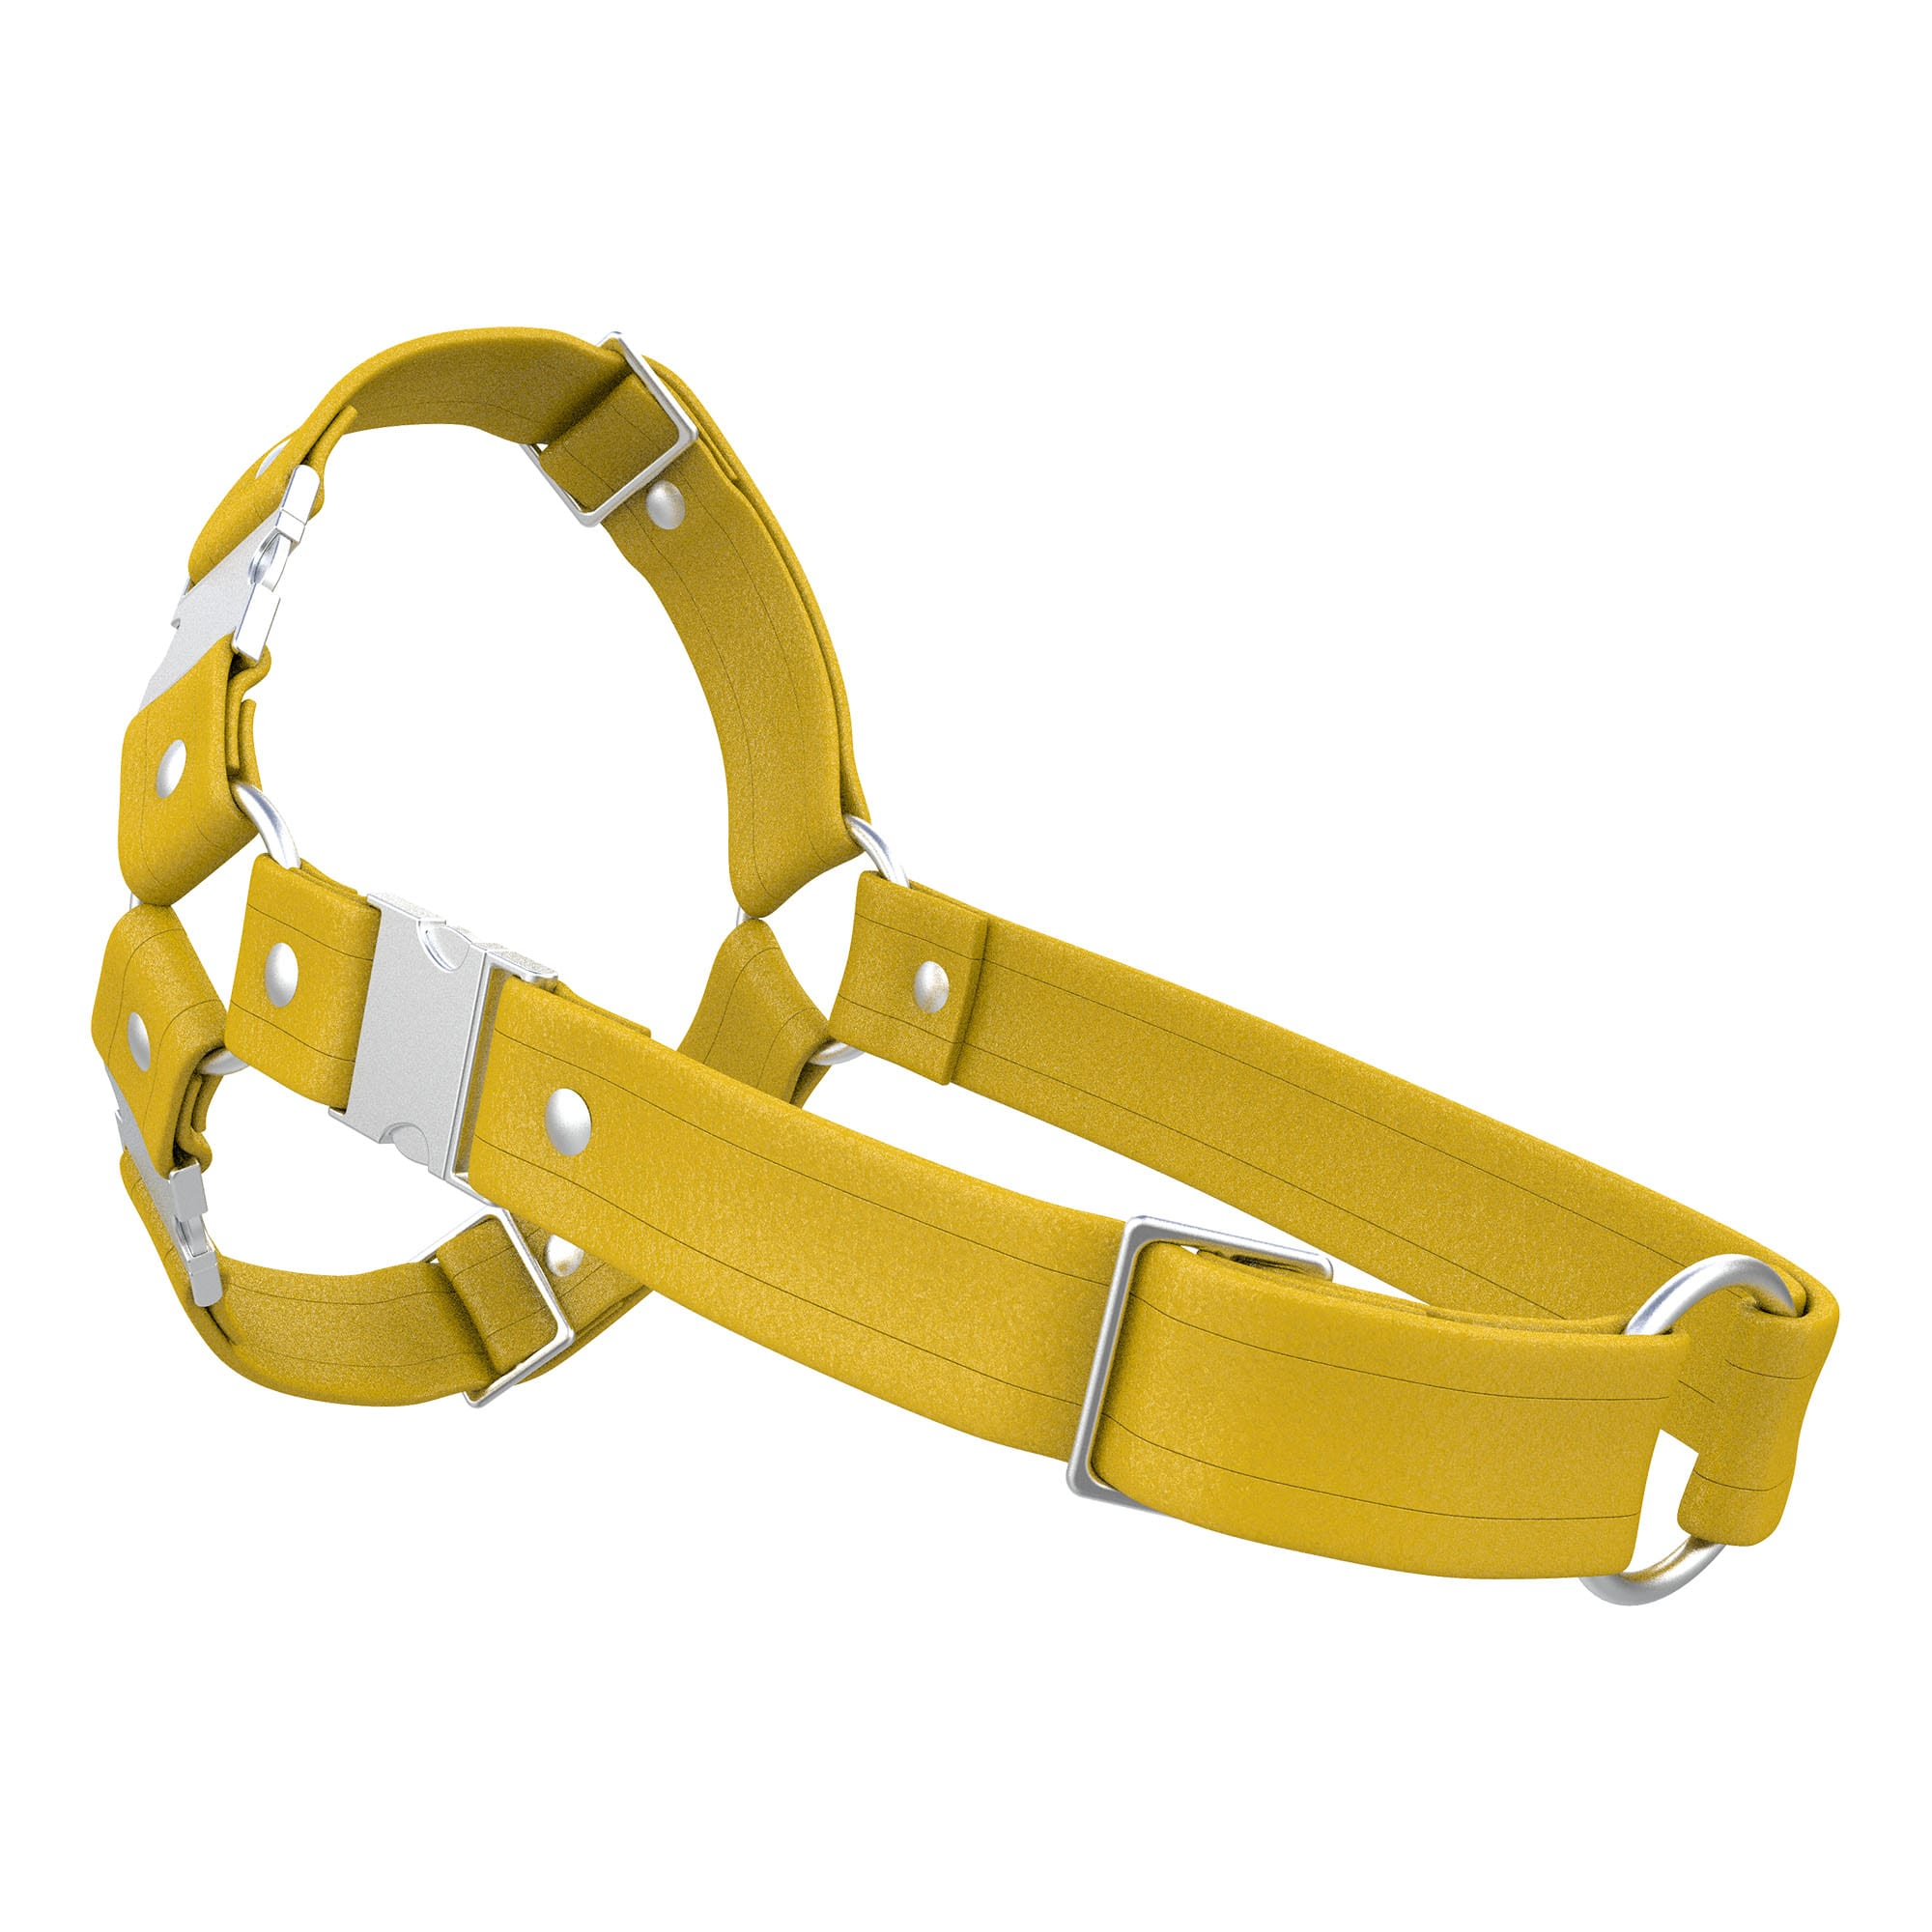 One Size Spartan Harness – Standard Leather – Yellow - Silver Metal Fittings